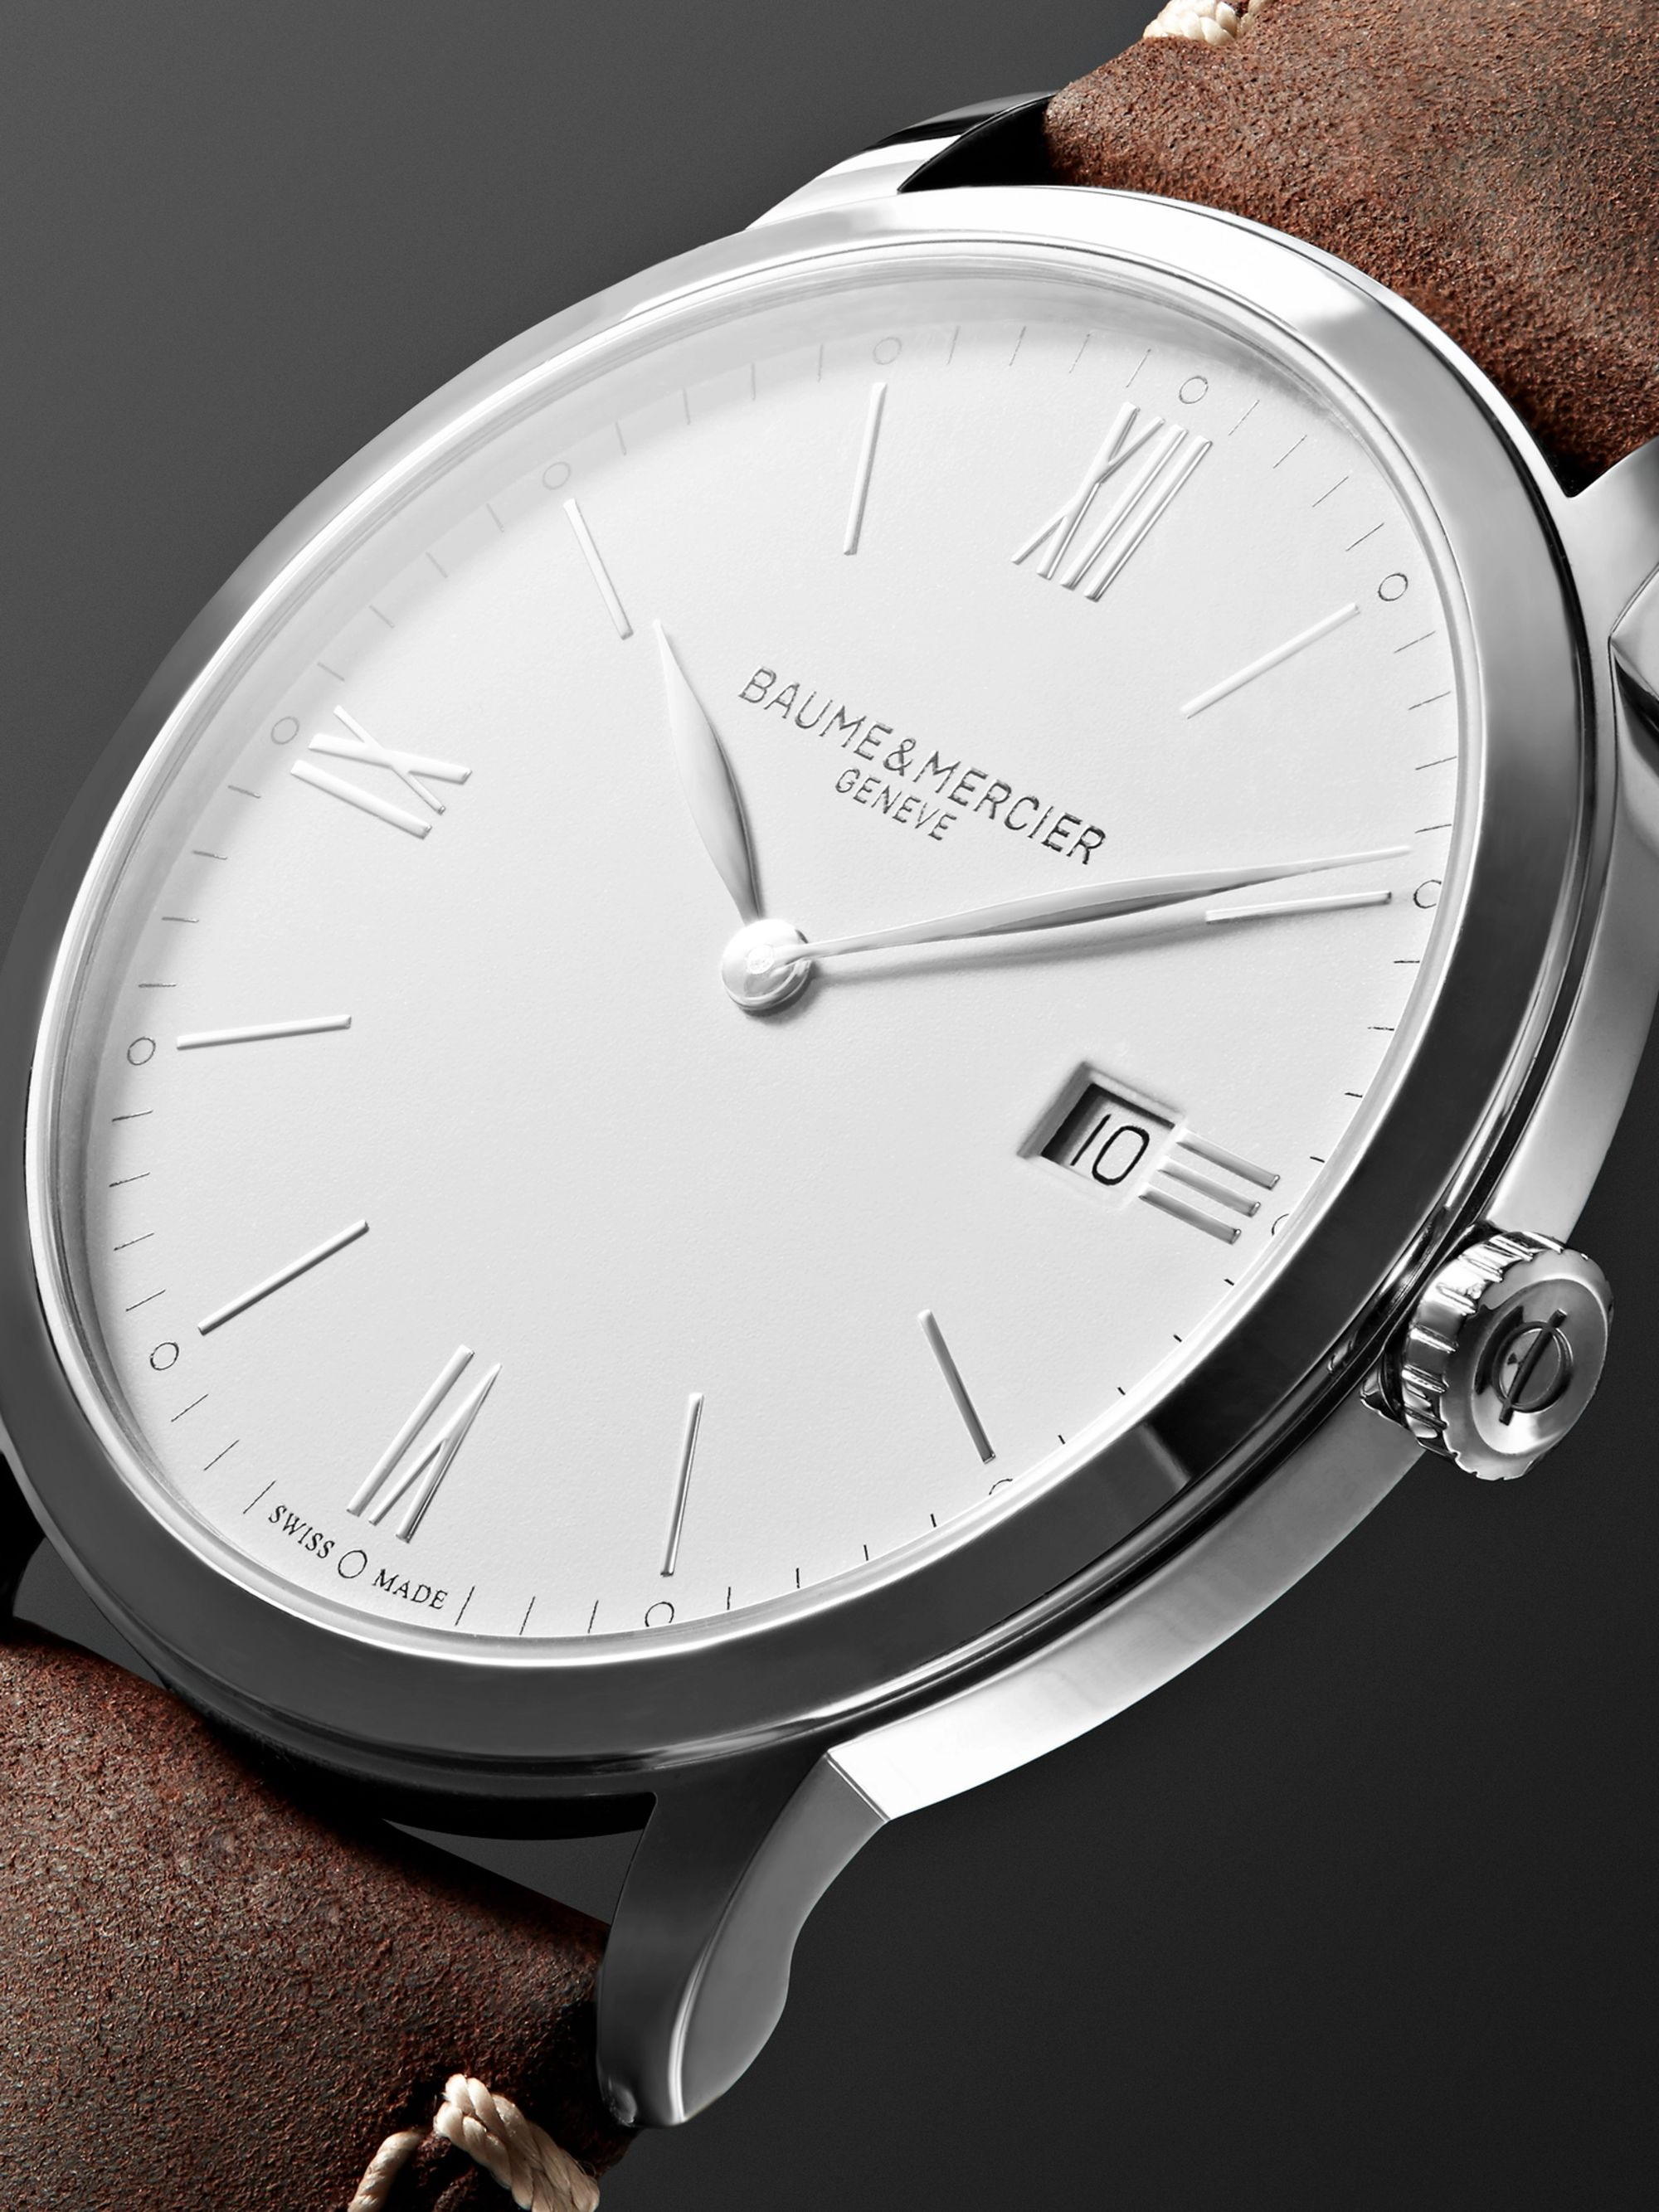 Baume & Mercier My Classima 40mm Stainless Steel and Leather Watch, Ref. No. 10389 cons